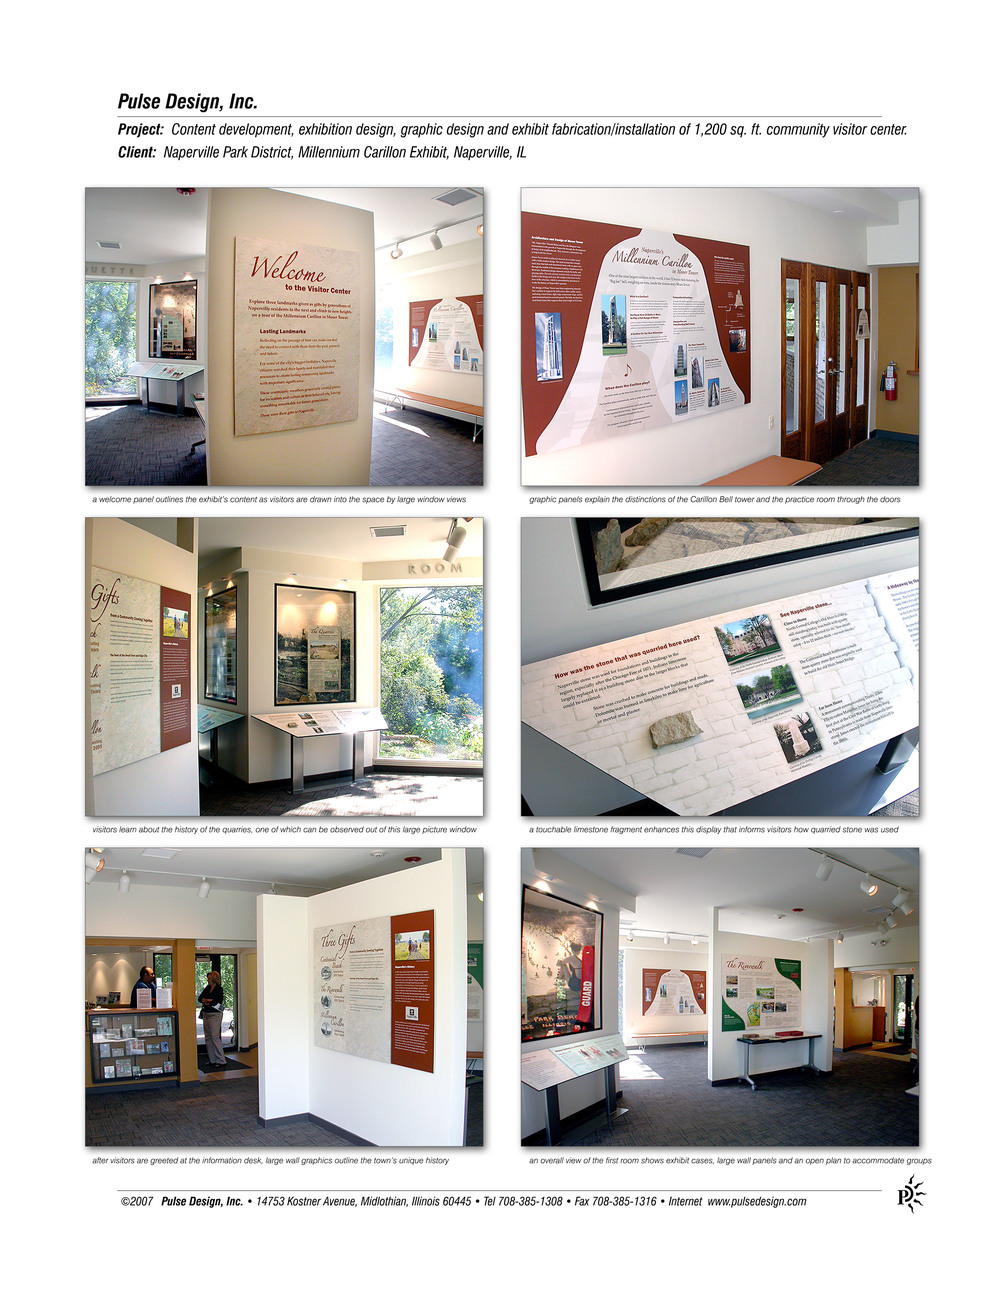 Naperville-Carillon-Exhibit-Photos-1-Pulse-Design-Inc.jpg